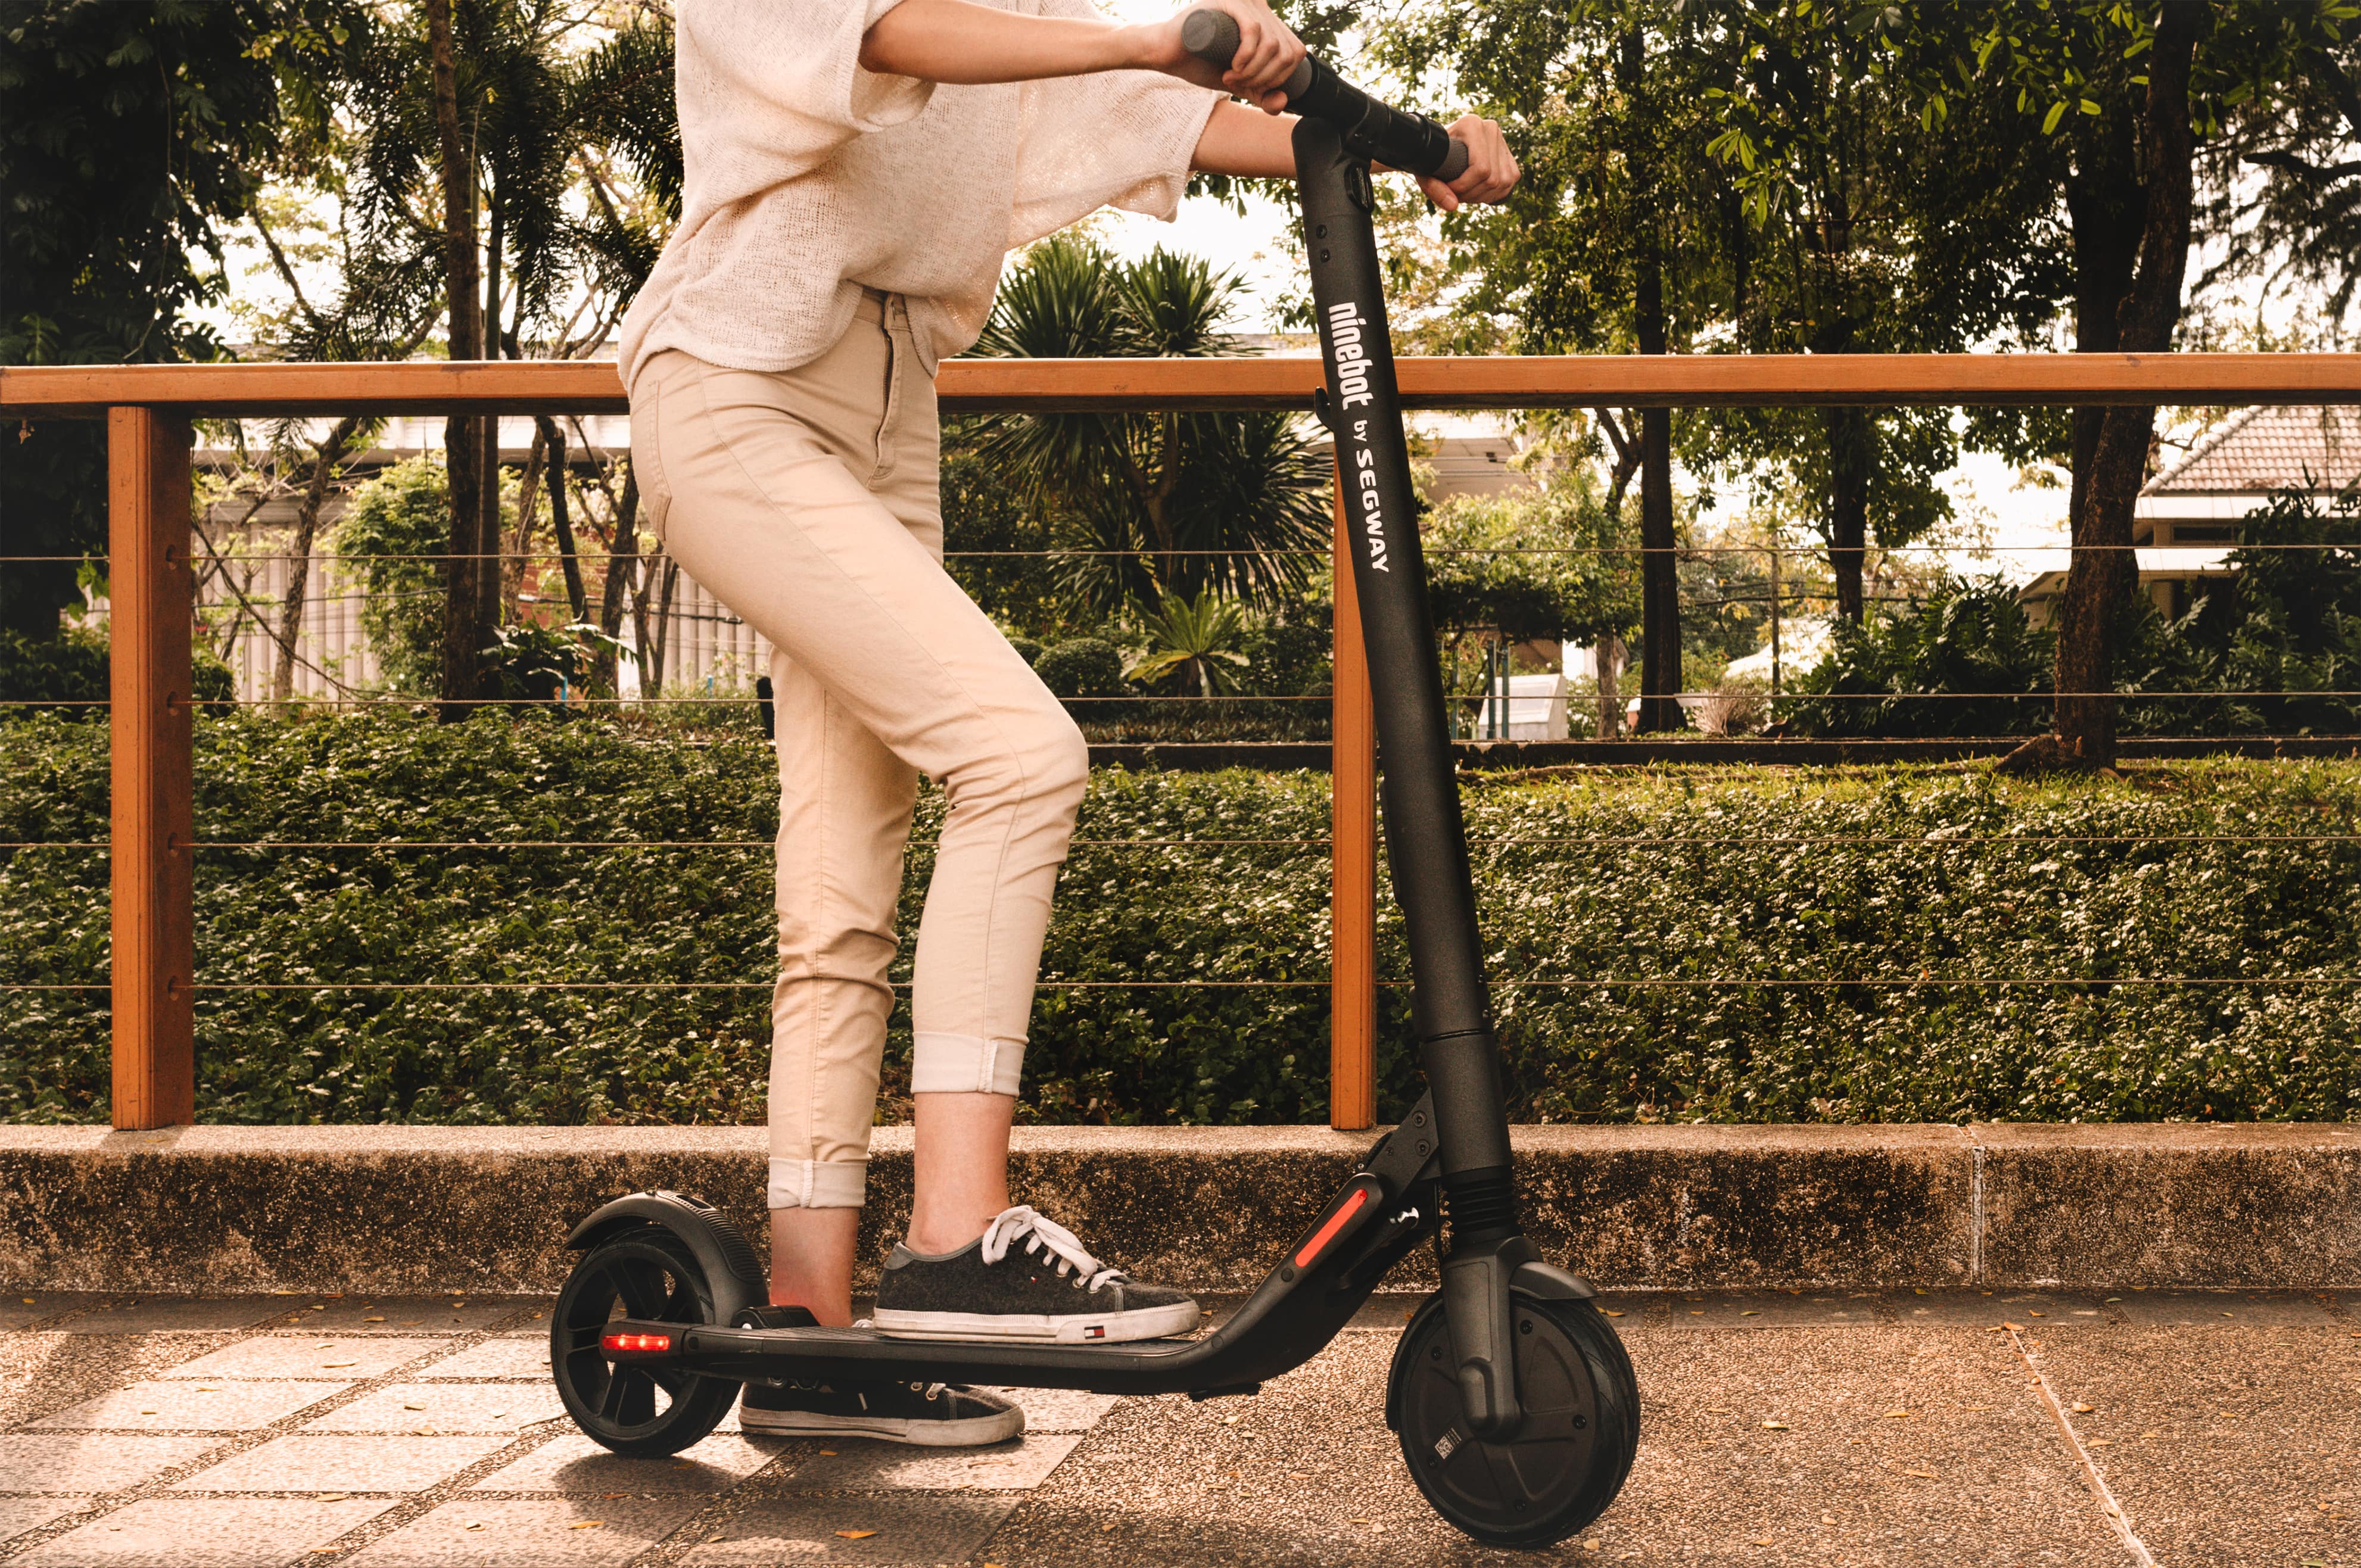 Comprehensive Guide to Buying an Electric Scooter in 2020